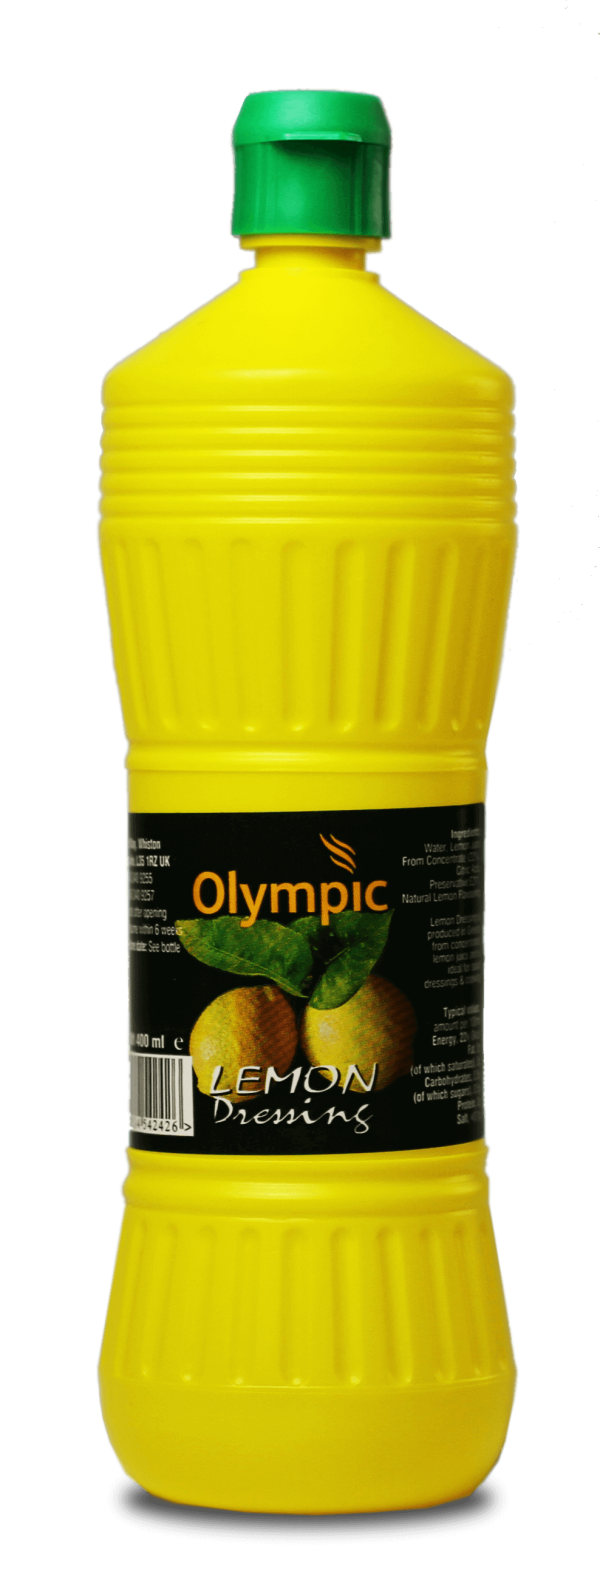 Olympic Lemon Dressing Bottle